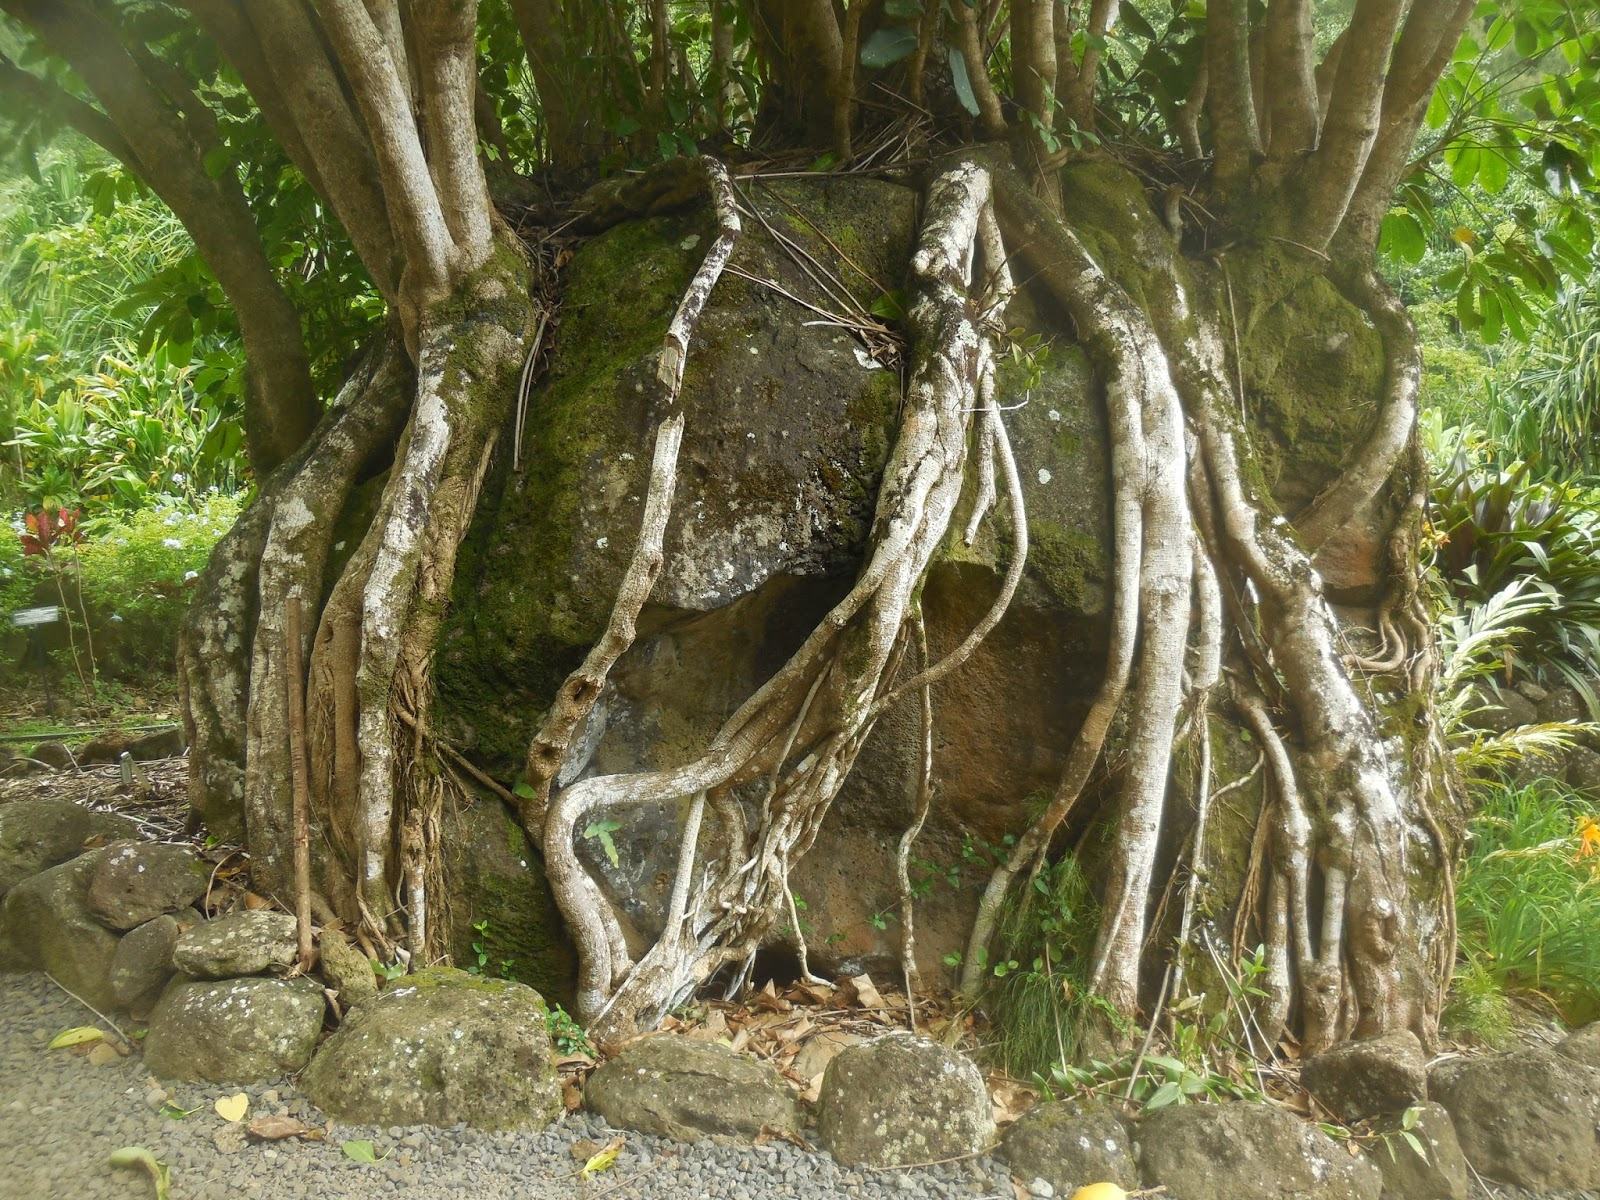 Wanderings of the old sloat: Limahuli Gardens